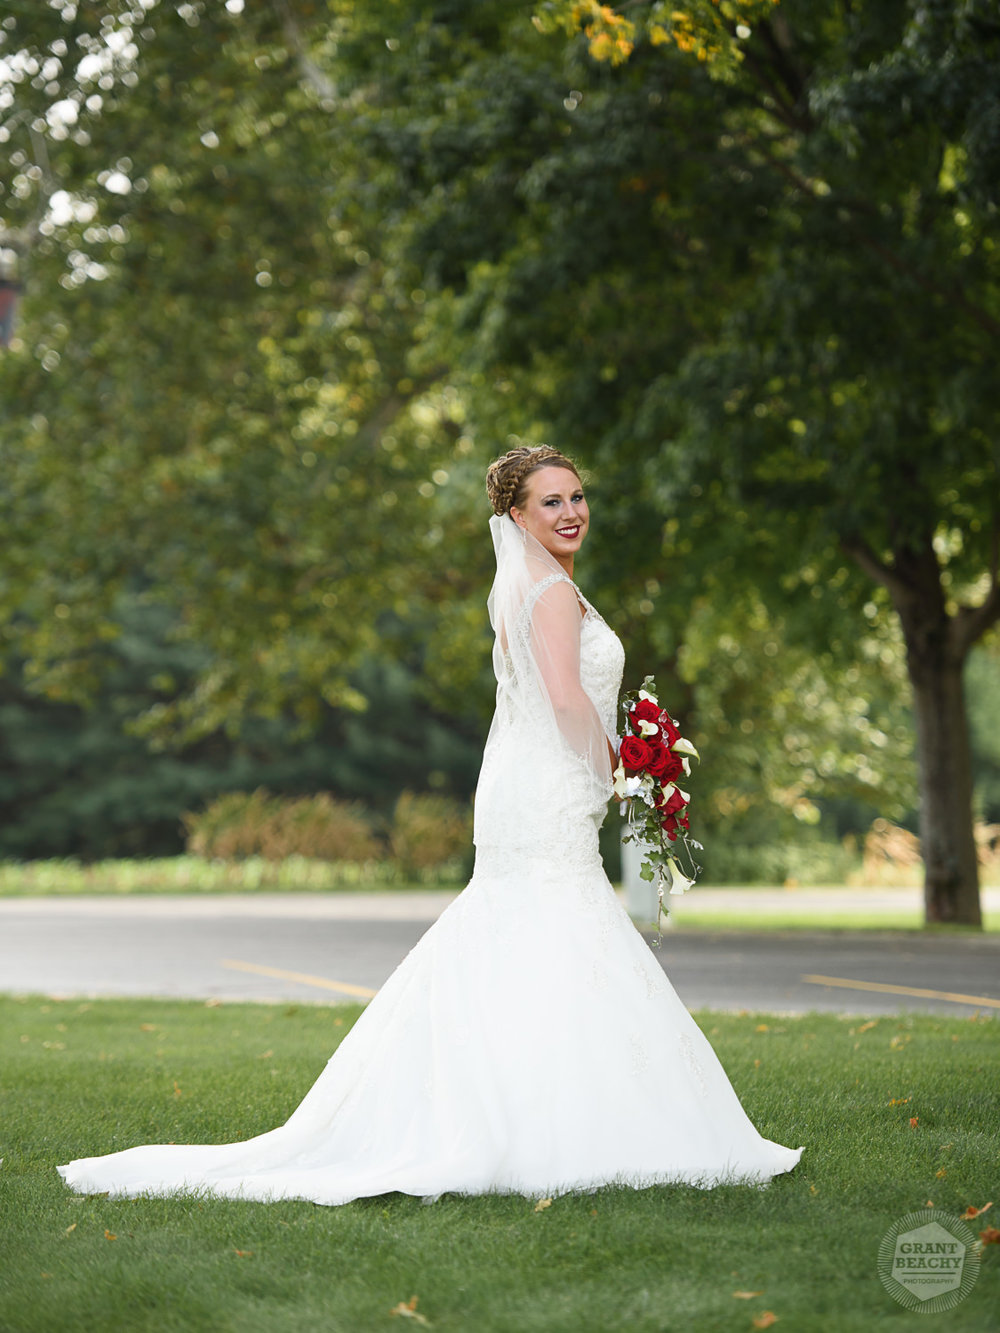 Grant Beachy wedding photographer, south bend, elkhart, chicago-12.jpg